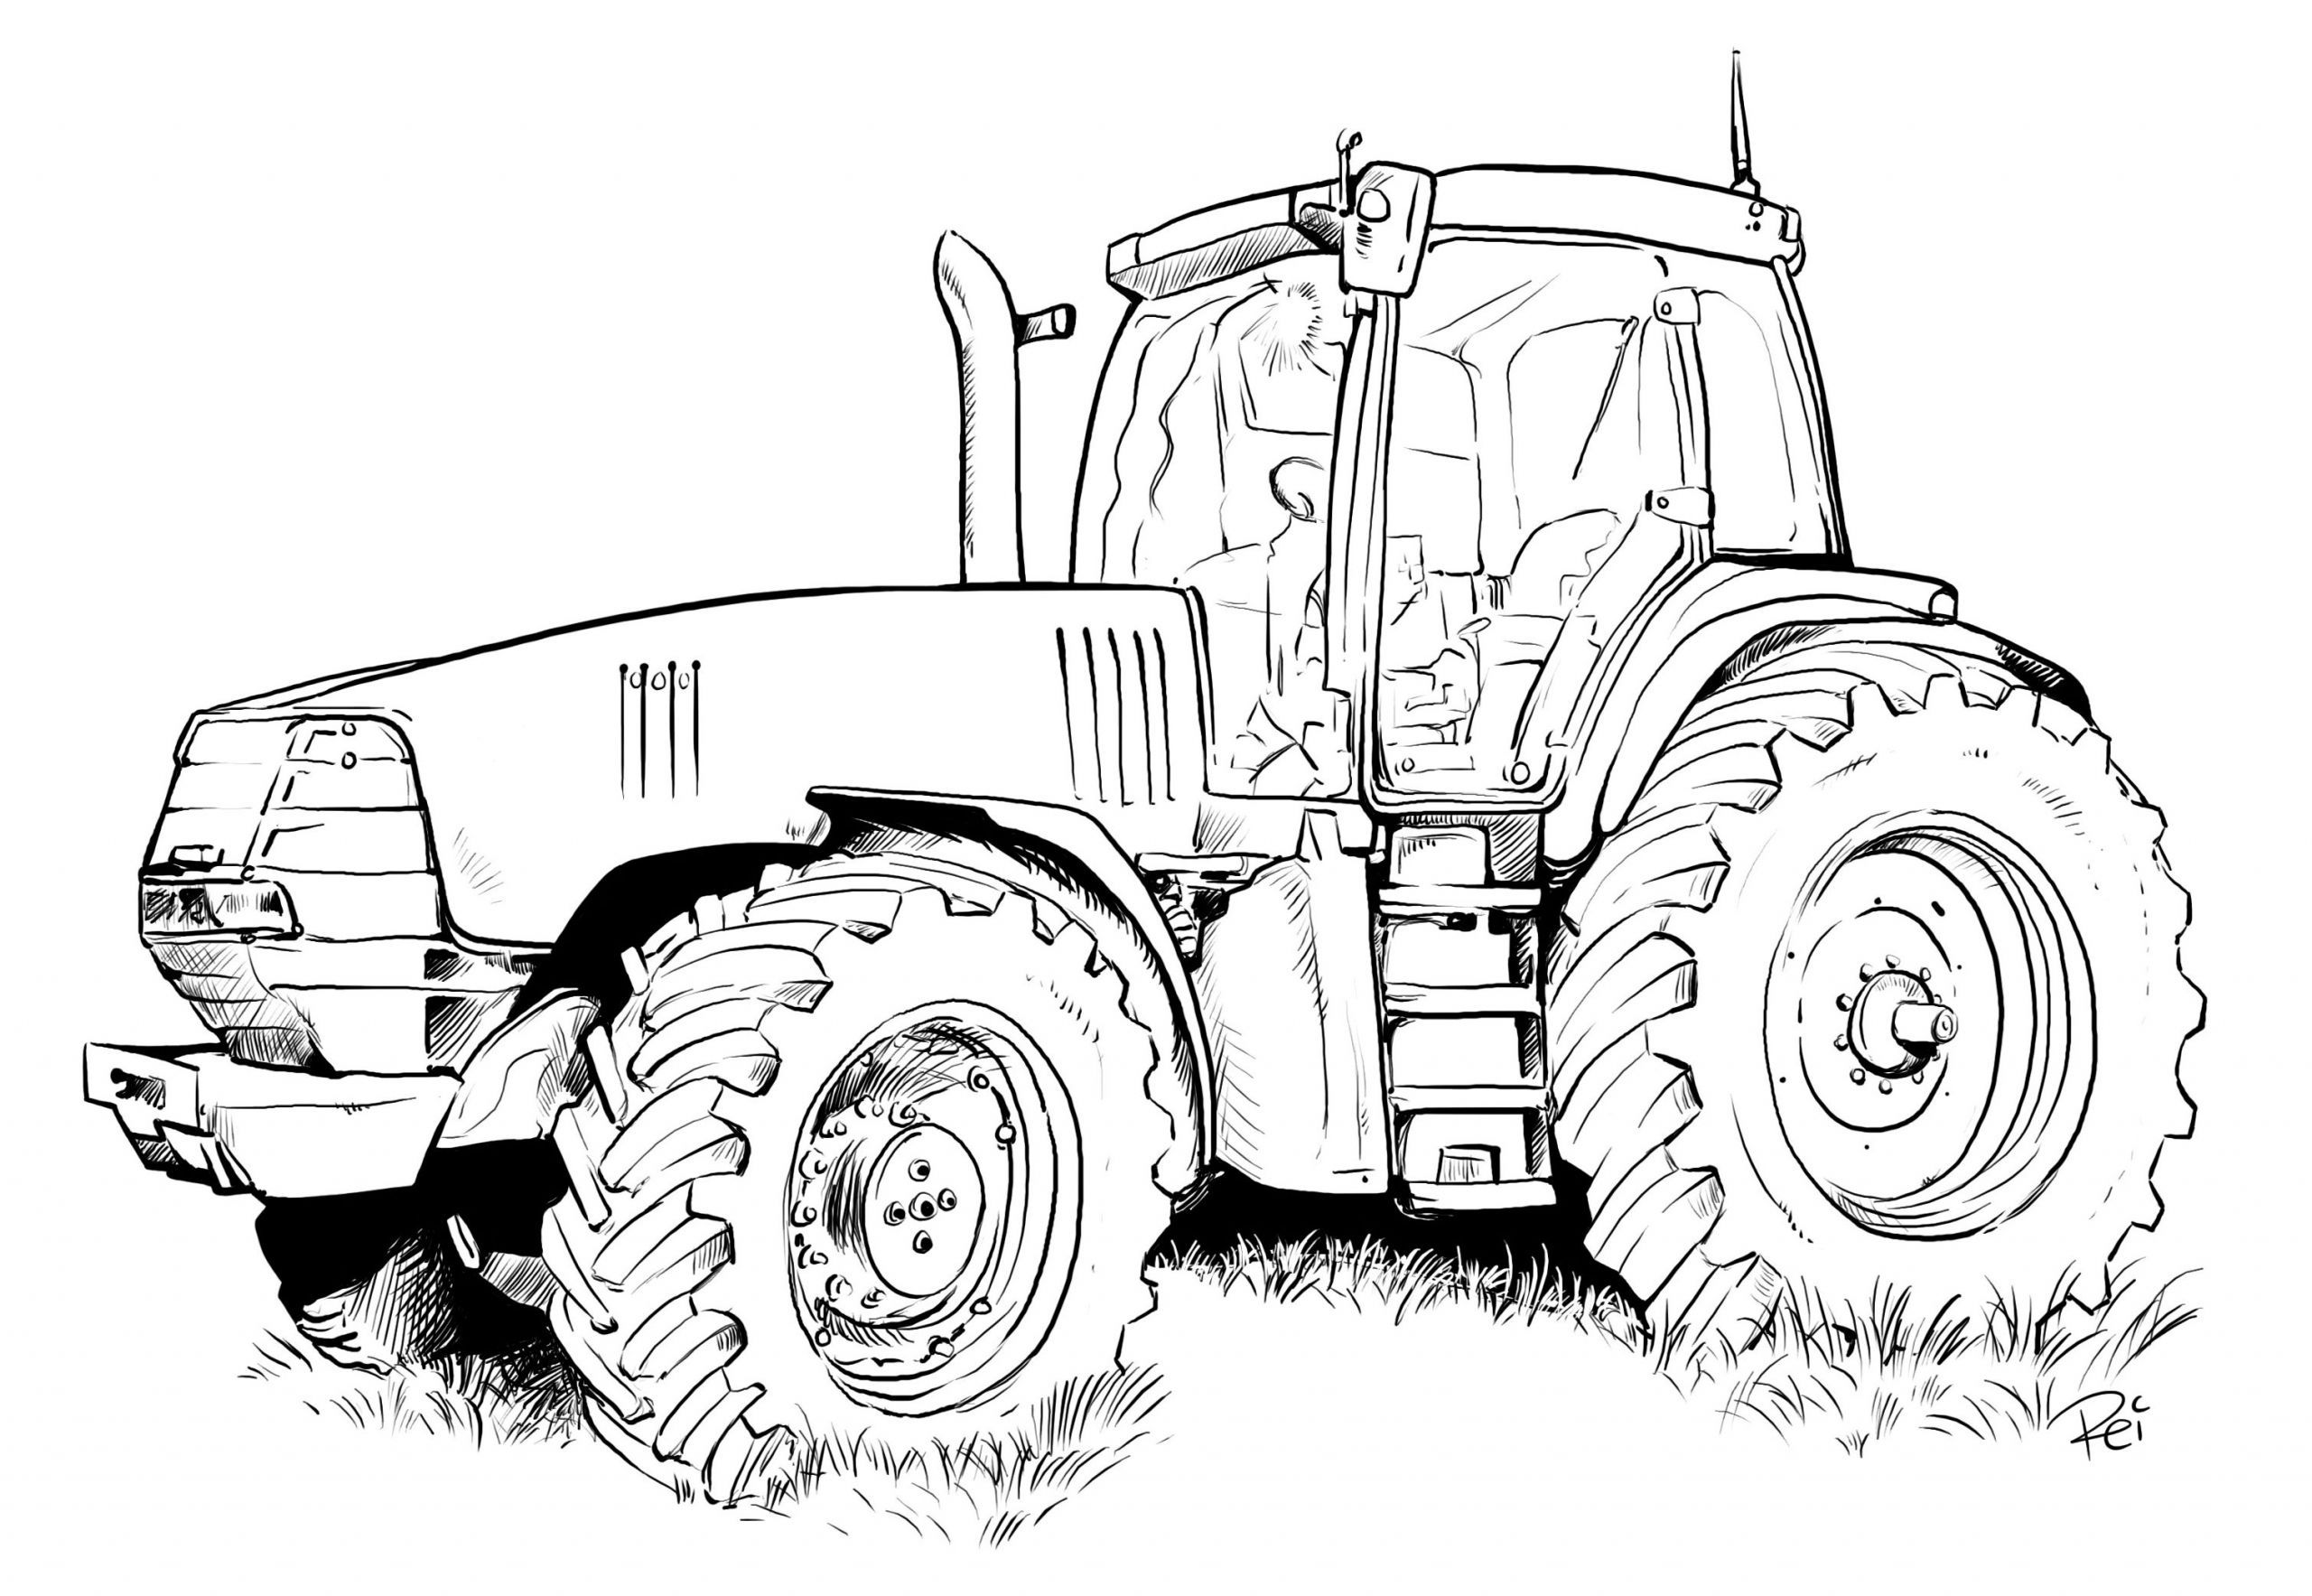 4 Tractor Coloring Pages 2017 A Restful Drawings A Z Tractor Coloring Pages Deer Coloring Pages Coloring Pages Inspirational